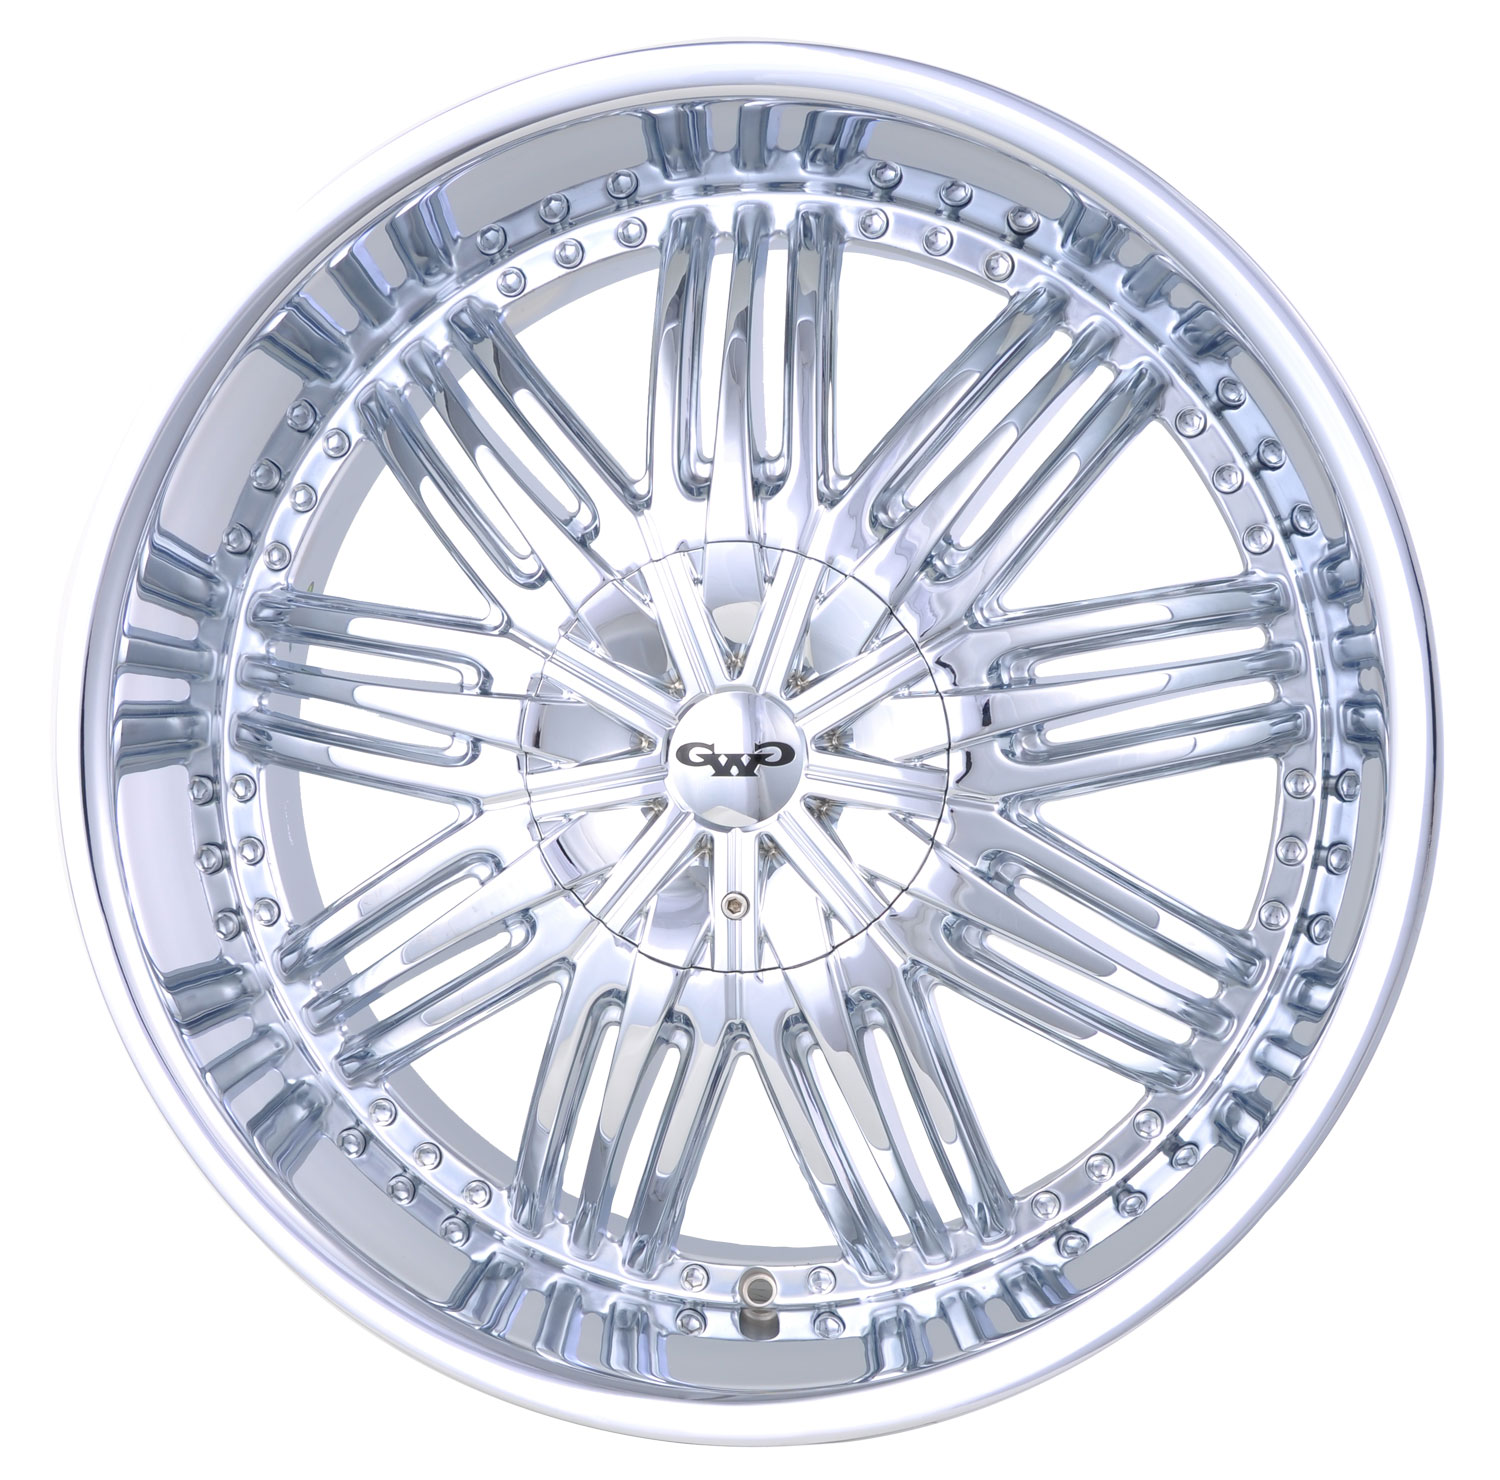 This wheel is fabulous, made for almost any make and model vehicle. The 10 spoke wheel adds a lot of style to the look of your vehicle. When you ride the street you will turn heads with this wheel.